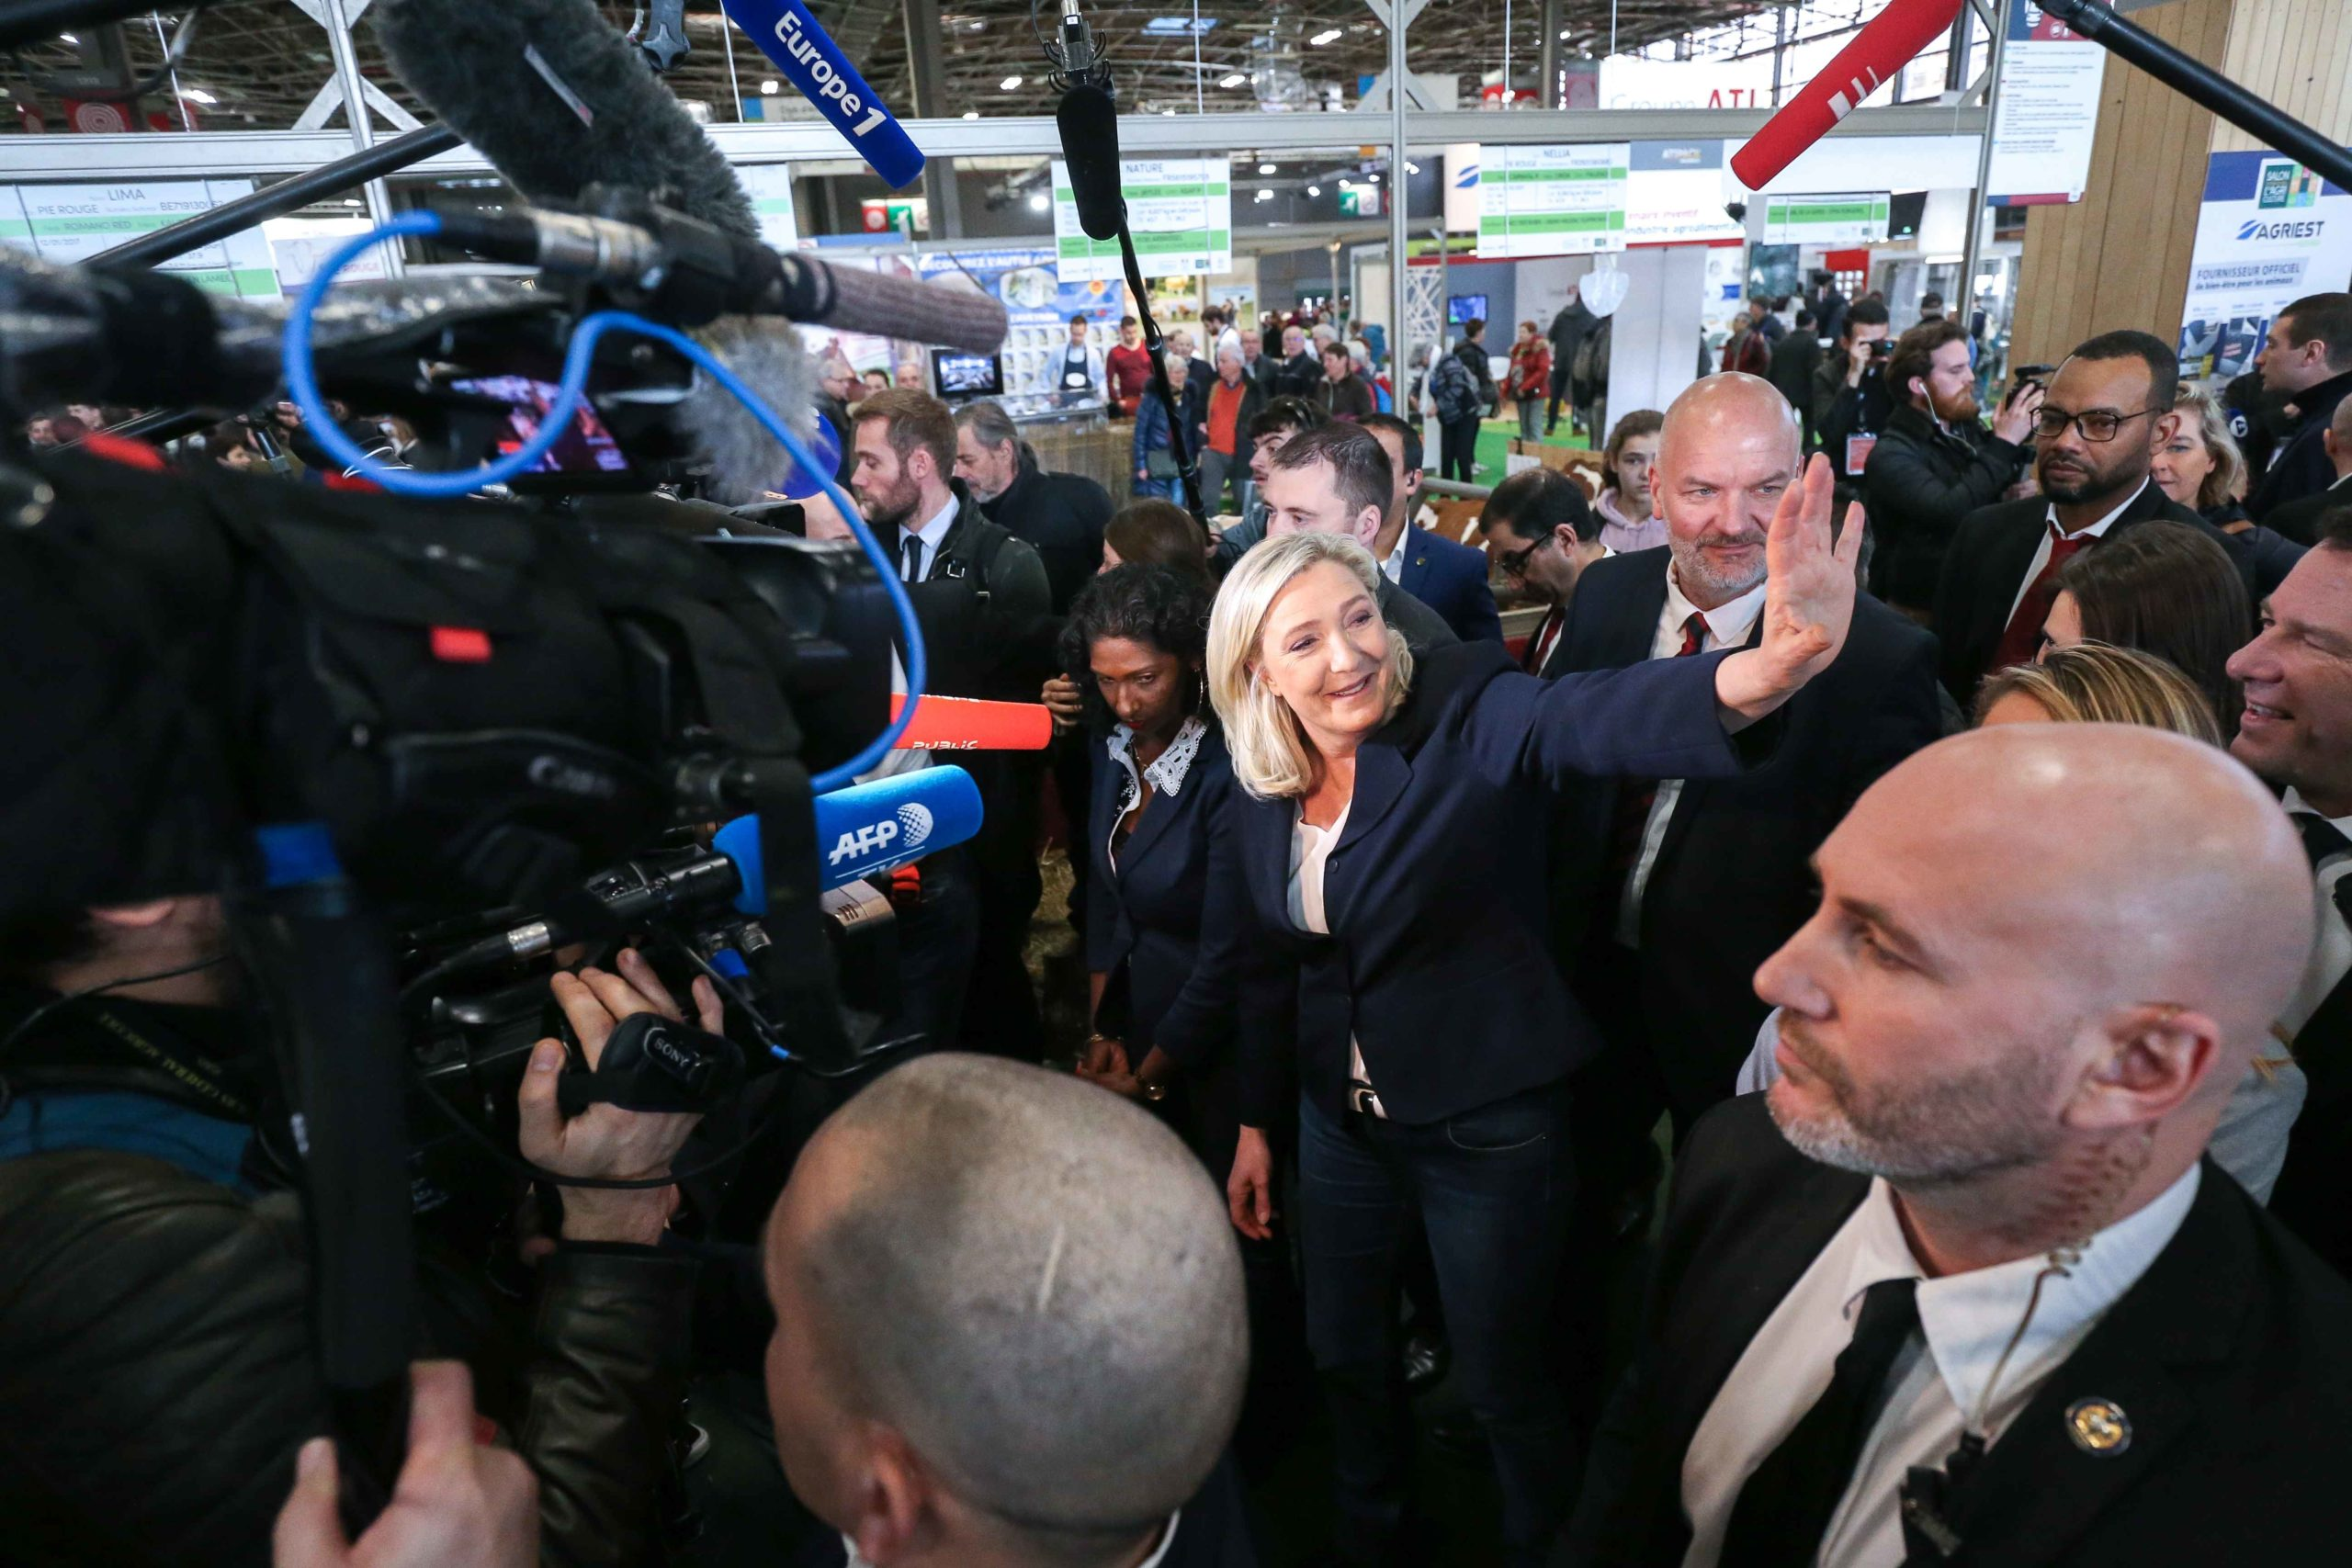 Marine Le Pen visite le Salon international de l'agriculture. © Michel Stoupak. Mar 25.02.2020, 10:25:12.